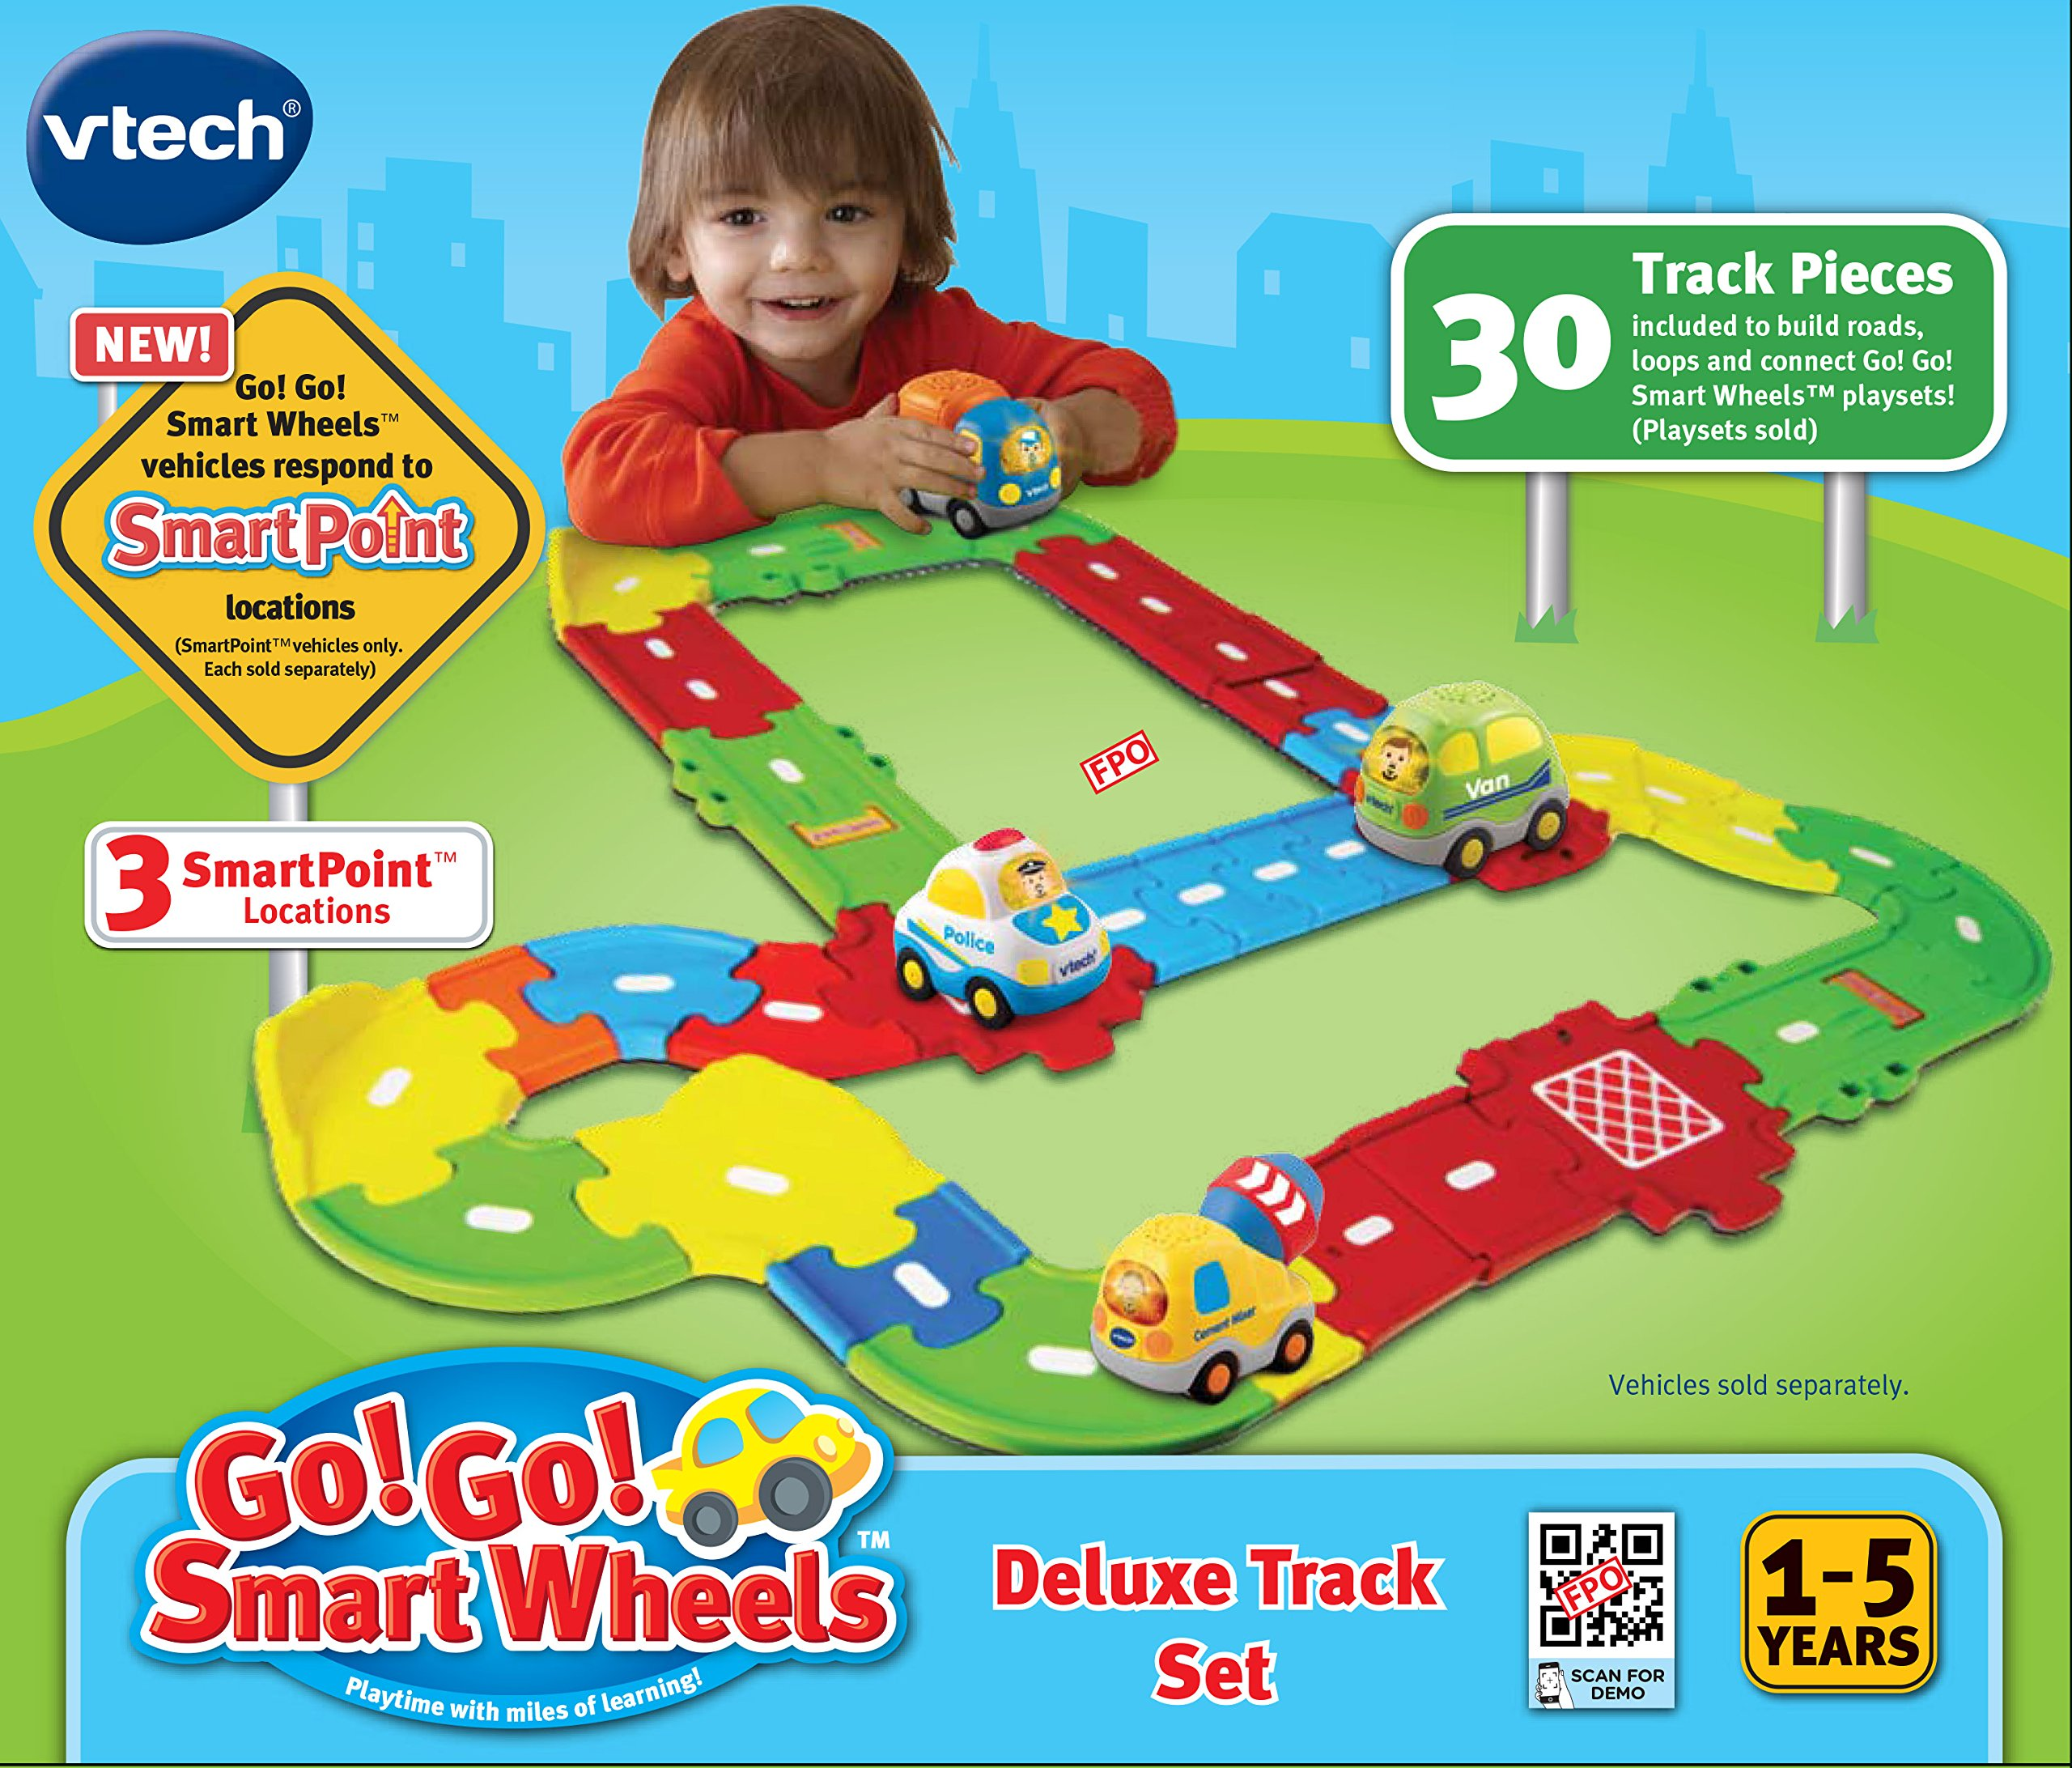 VTech Go! Go! Smart Wheels Deluxe Track Playset by VTech (Image #5)